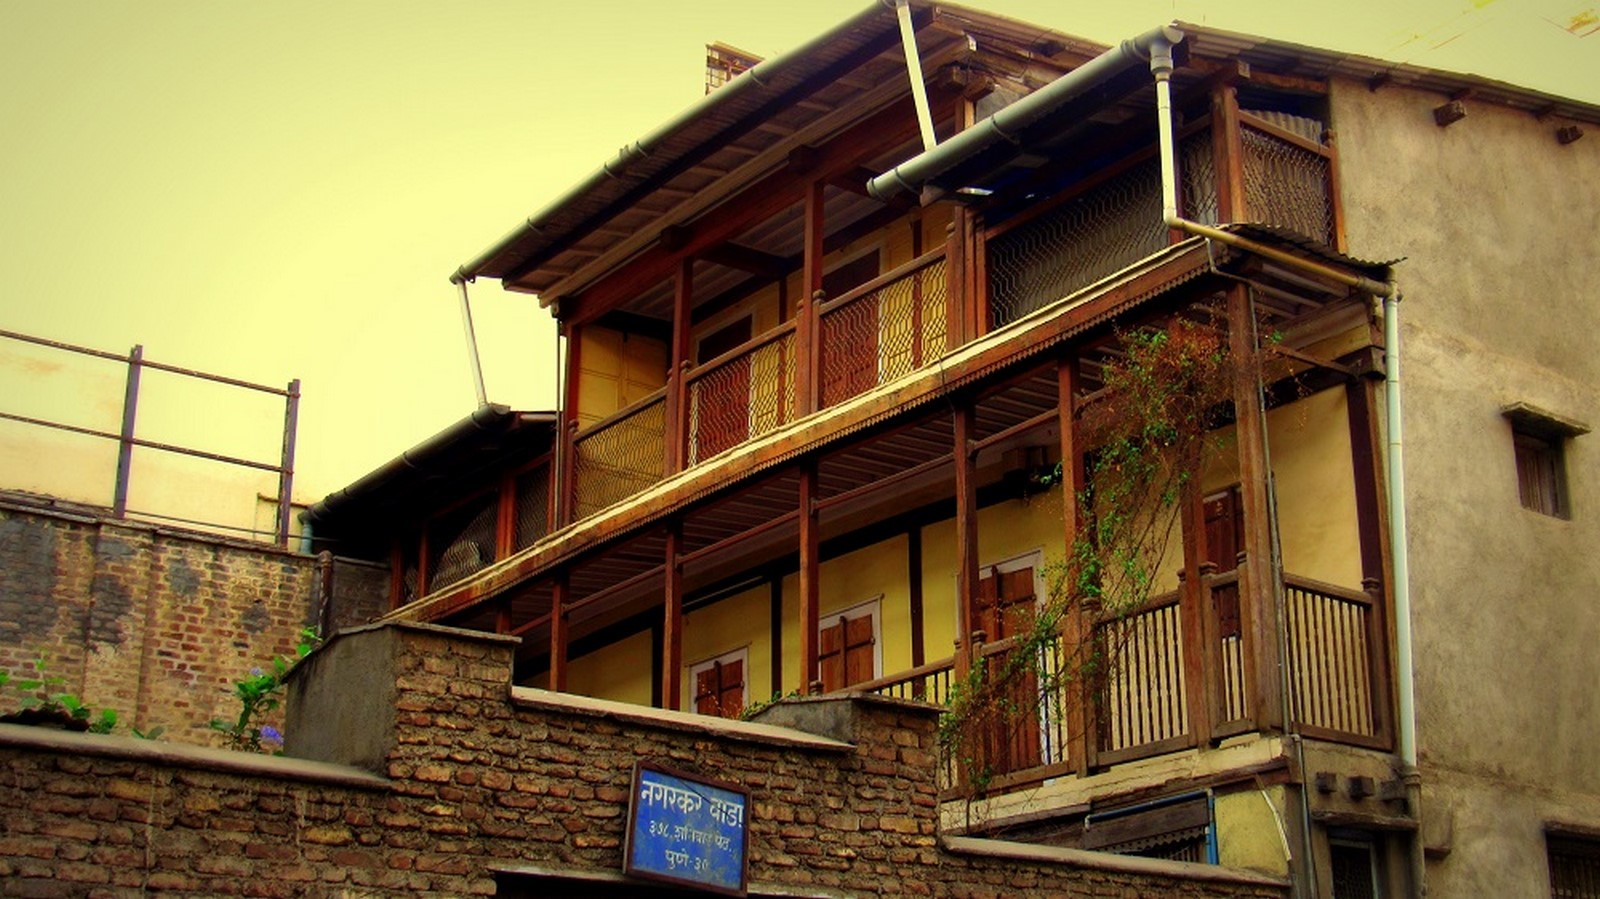 Architecture of Indian Cities_ Pune- Queen of the Deccan - Sheet9